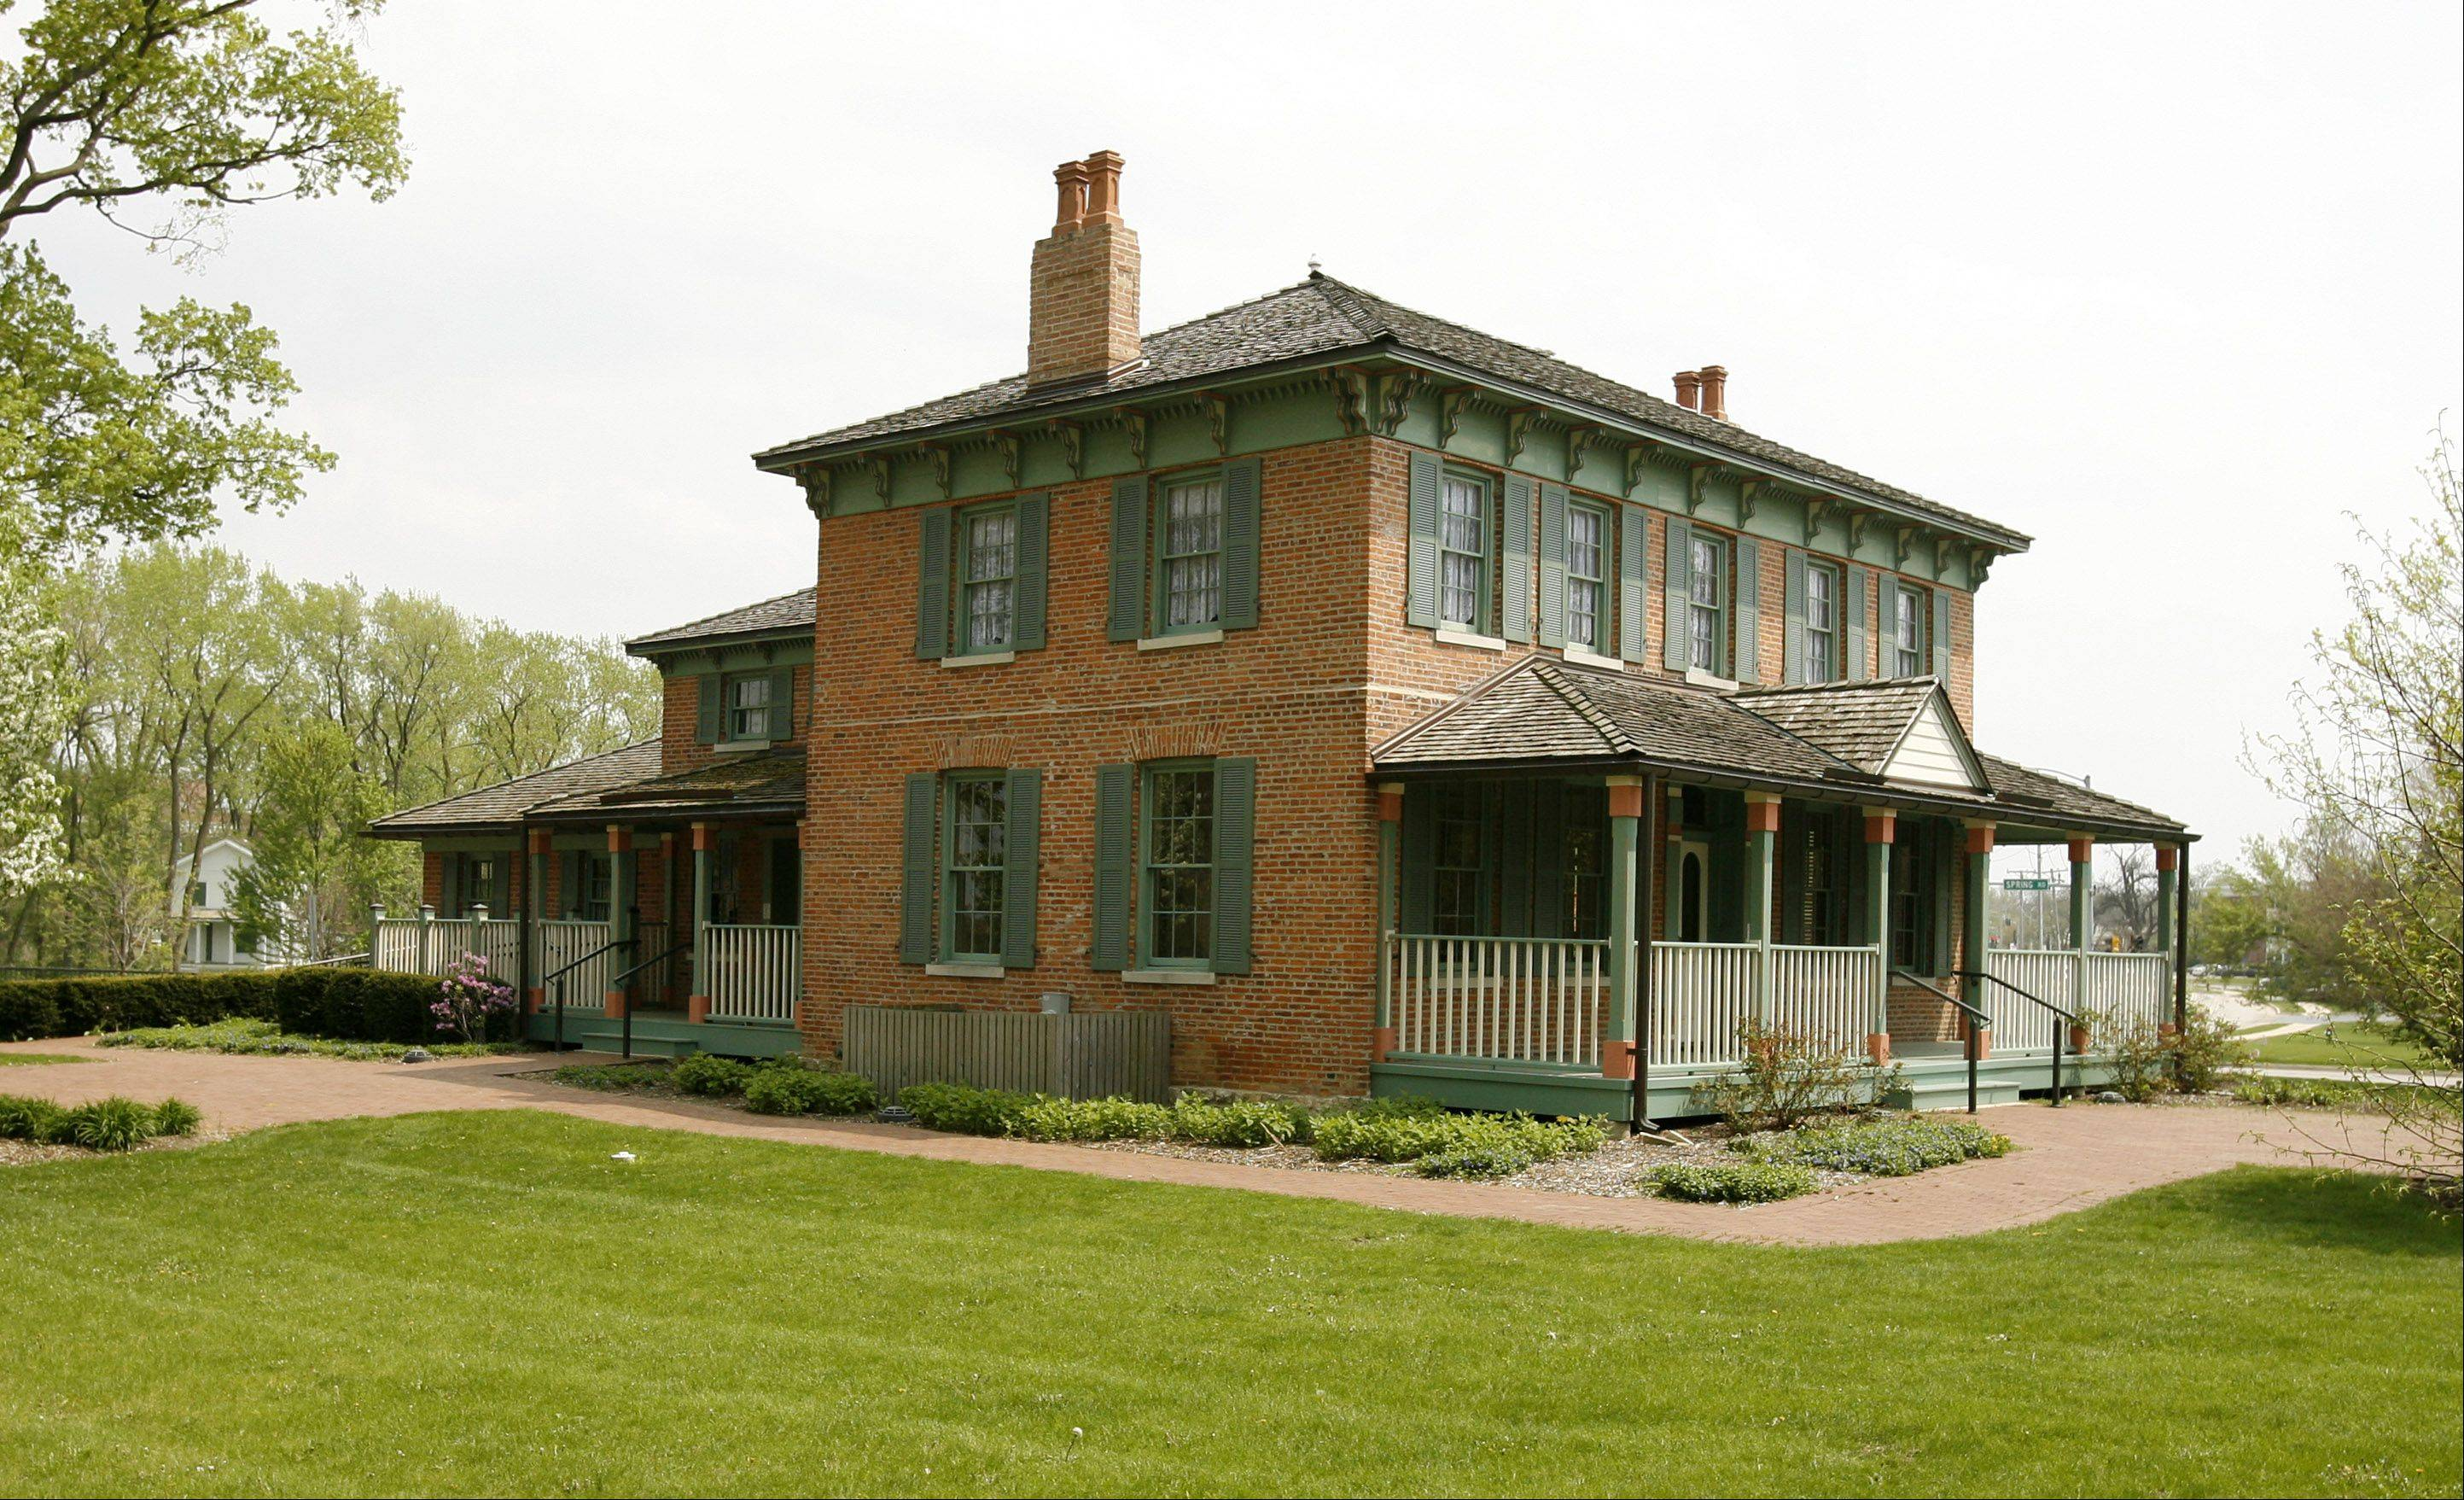 Graue House: Frederick Graue's former home was completed in 1859. The forest preserve bought the two-story brick house in 1989 after a condemnation battle with the former owner.